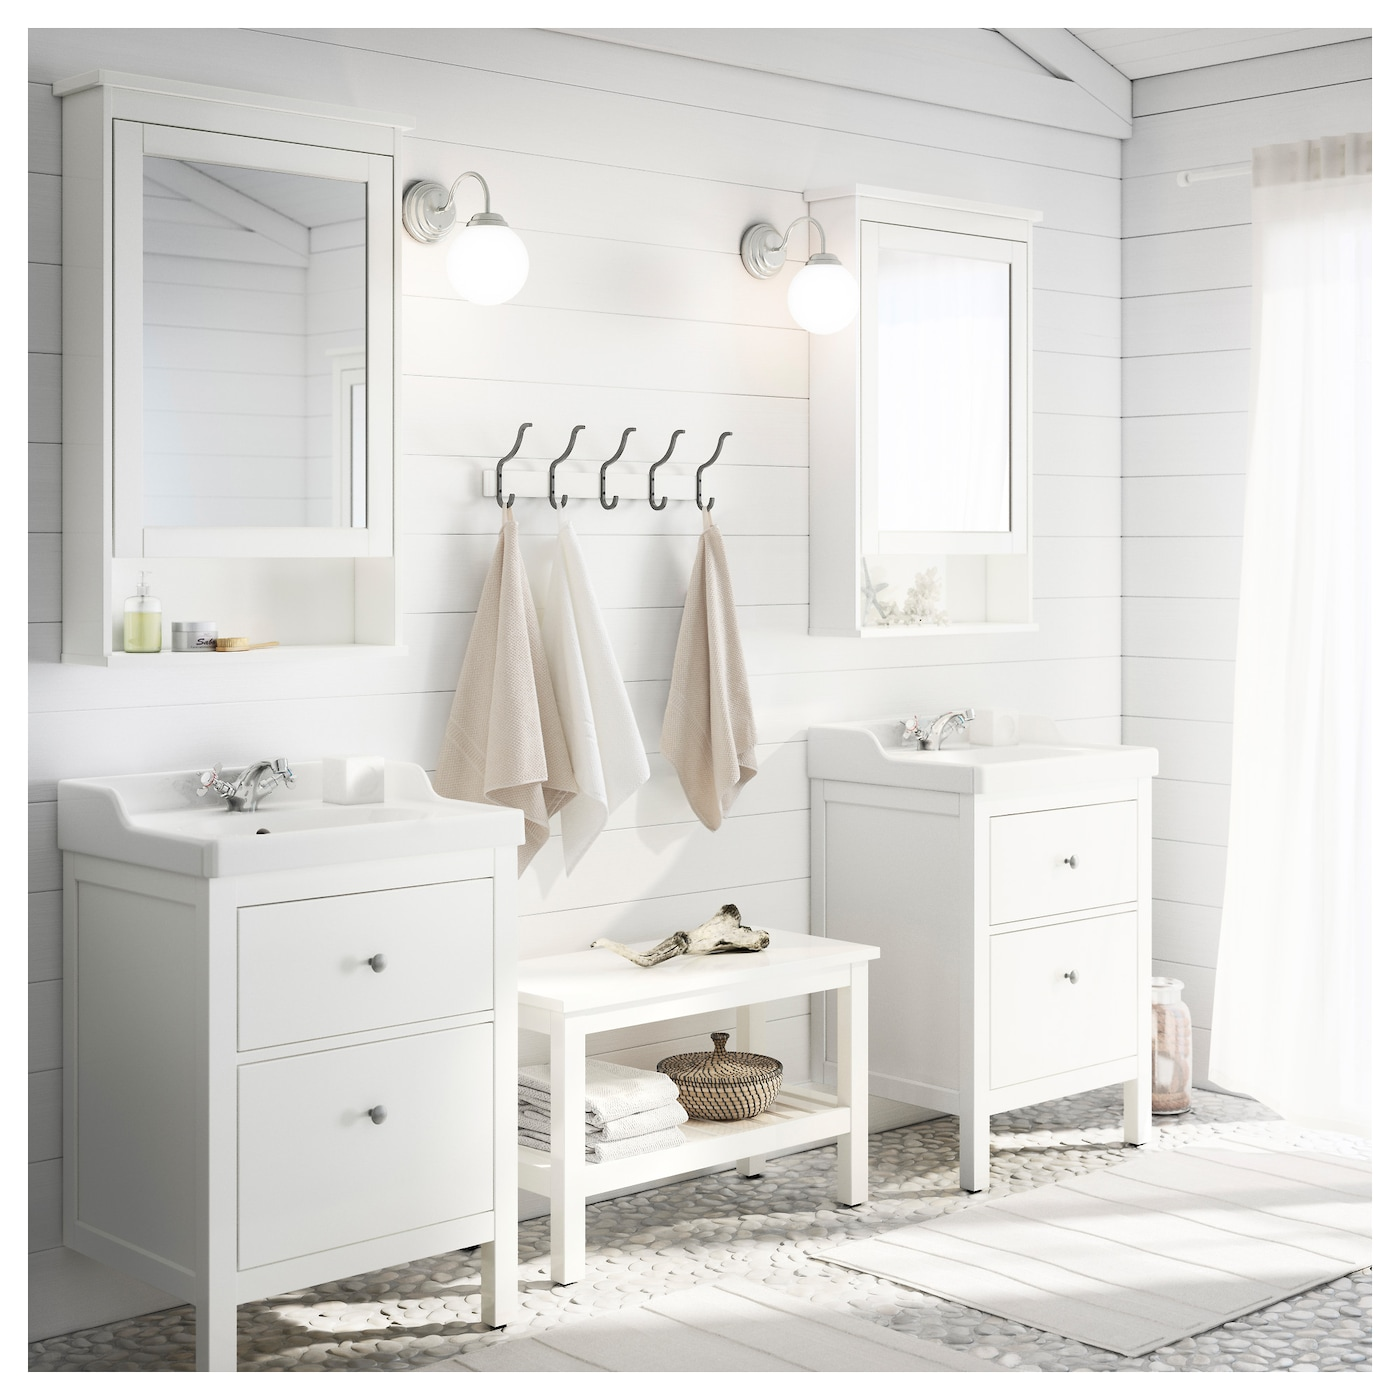 hemnes r ttviken meuble lavabo 2tir blanc 60x49x89 cm ikea. Black Bedroom Furniture Sets. Home Design Ideas